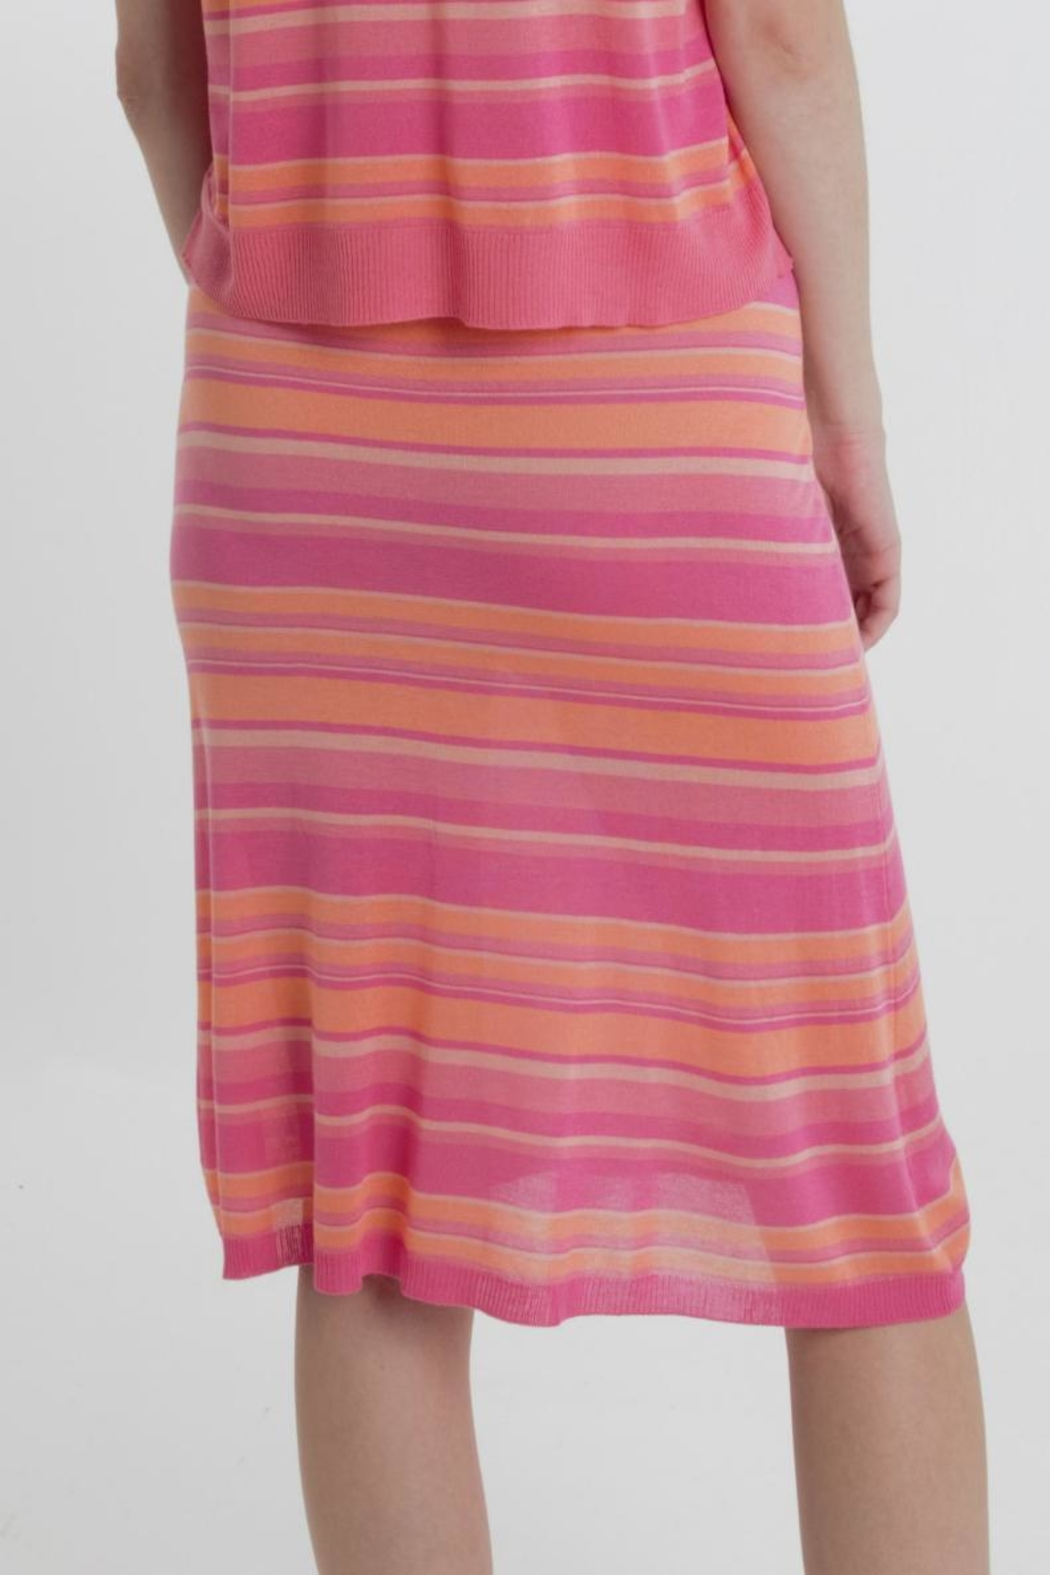 Thread+Onion Striped Knit Skirt - Side Cropped Image